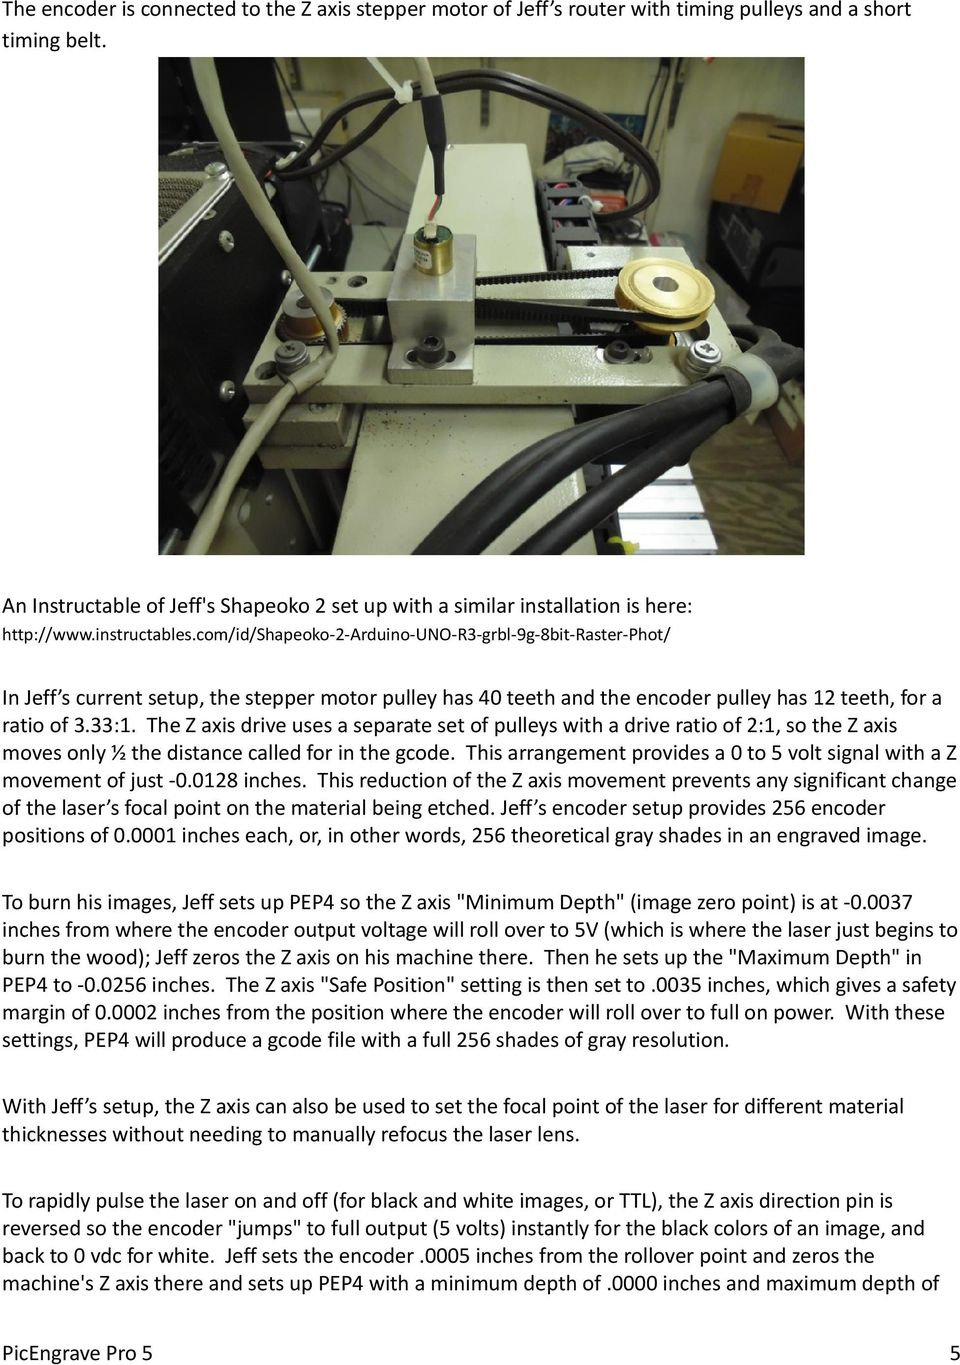 Analog Laser Diode Setup For Gray Scale Image Engraving Pdf Need Help Page 3 Pointer Forums Discuss Com Id Shapeoko 2 Arduino Uno R3 Grbl